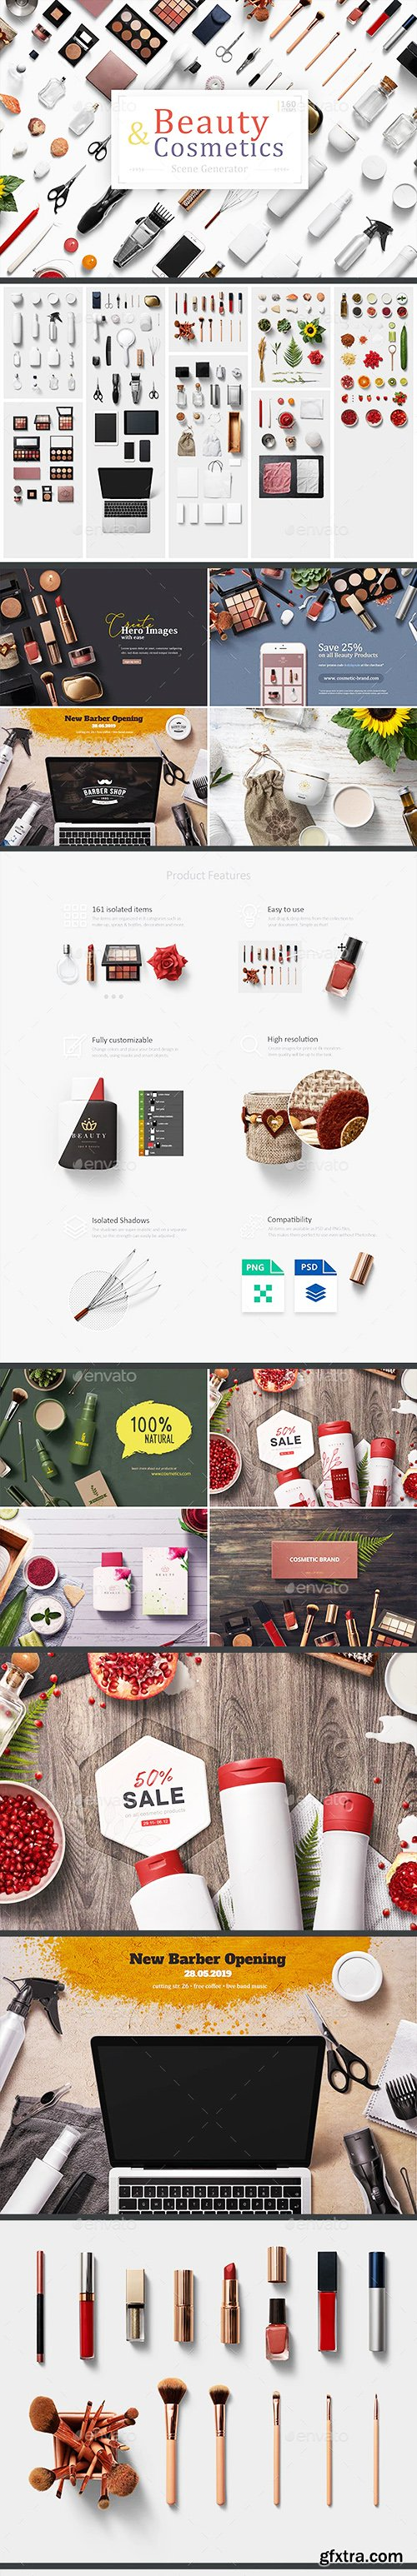 Graphicriver Beauty & Cosmetics Scene Generator 23182741